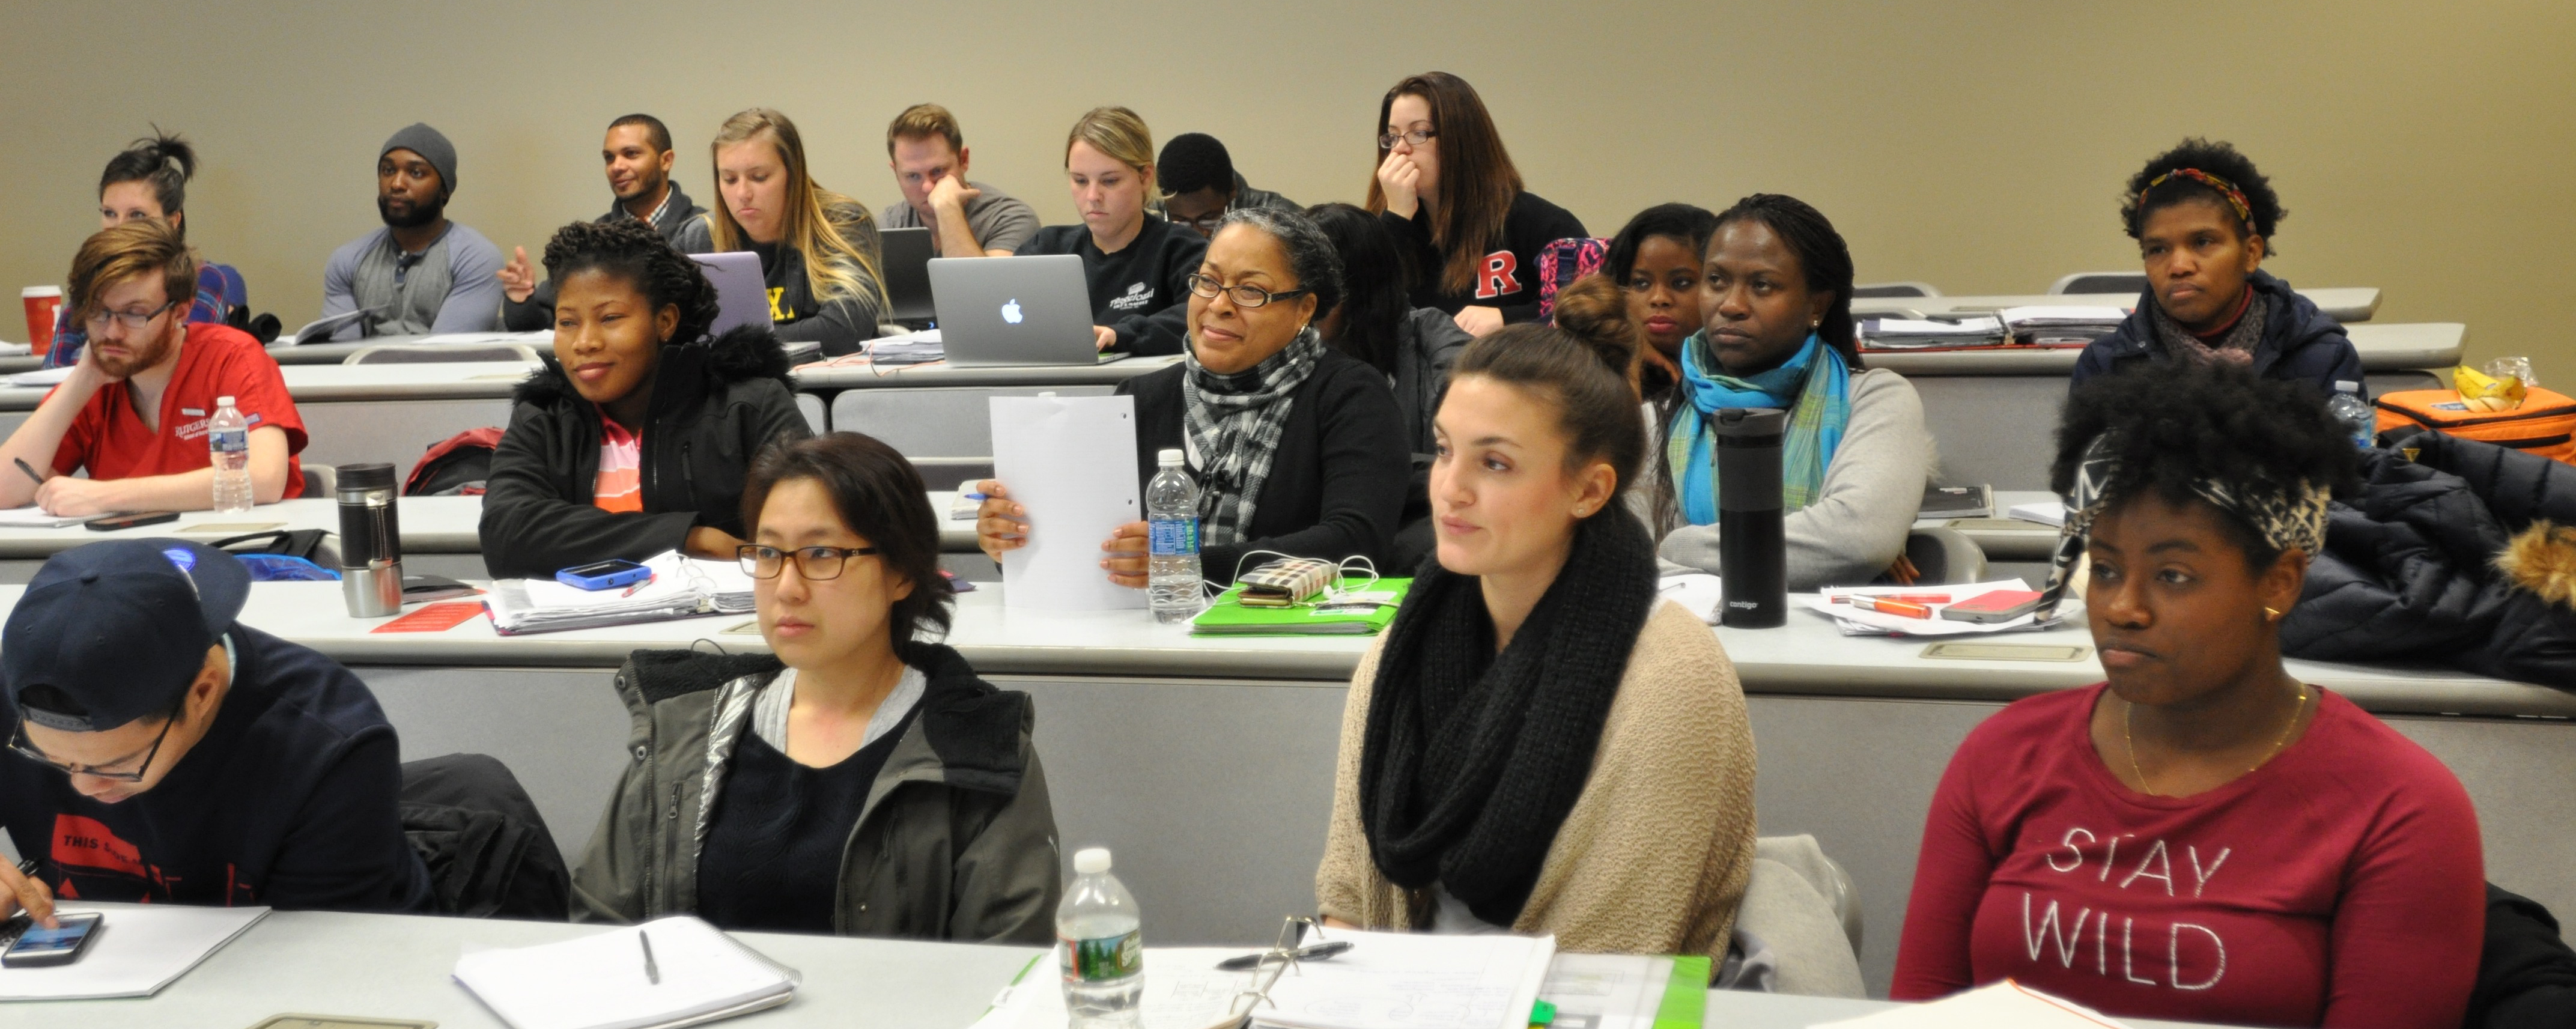 Rutgers nursing students listen to Coalition care team members talk about teaming and patient care